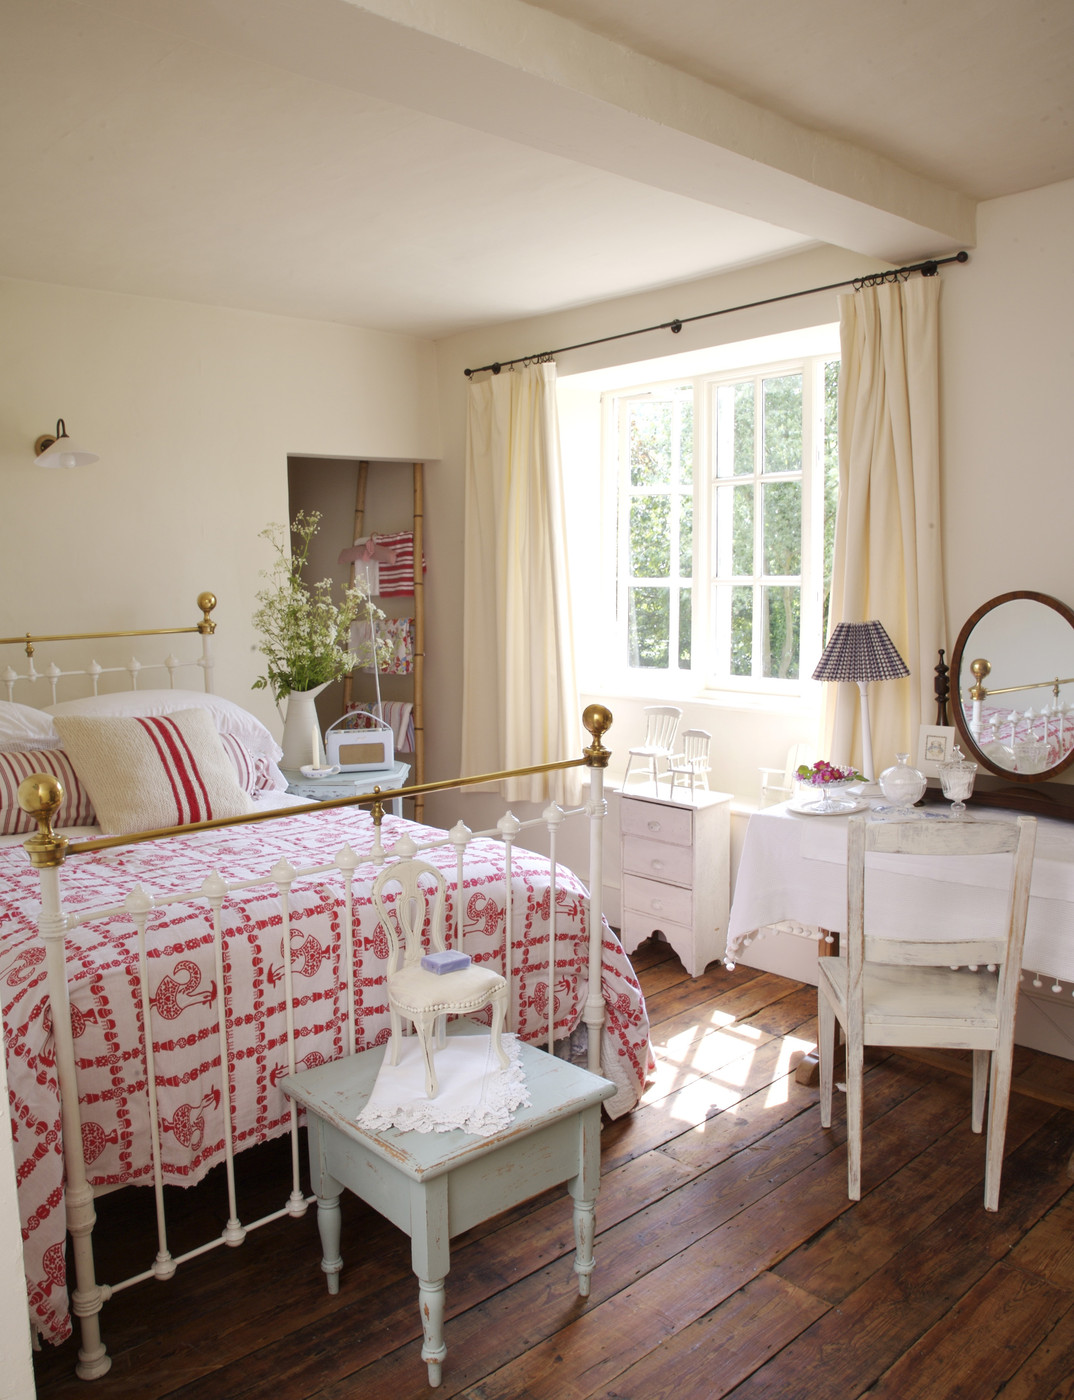 Teen Girls Room Photos Design Ideas Remodel and Decor